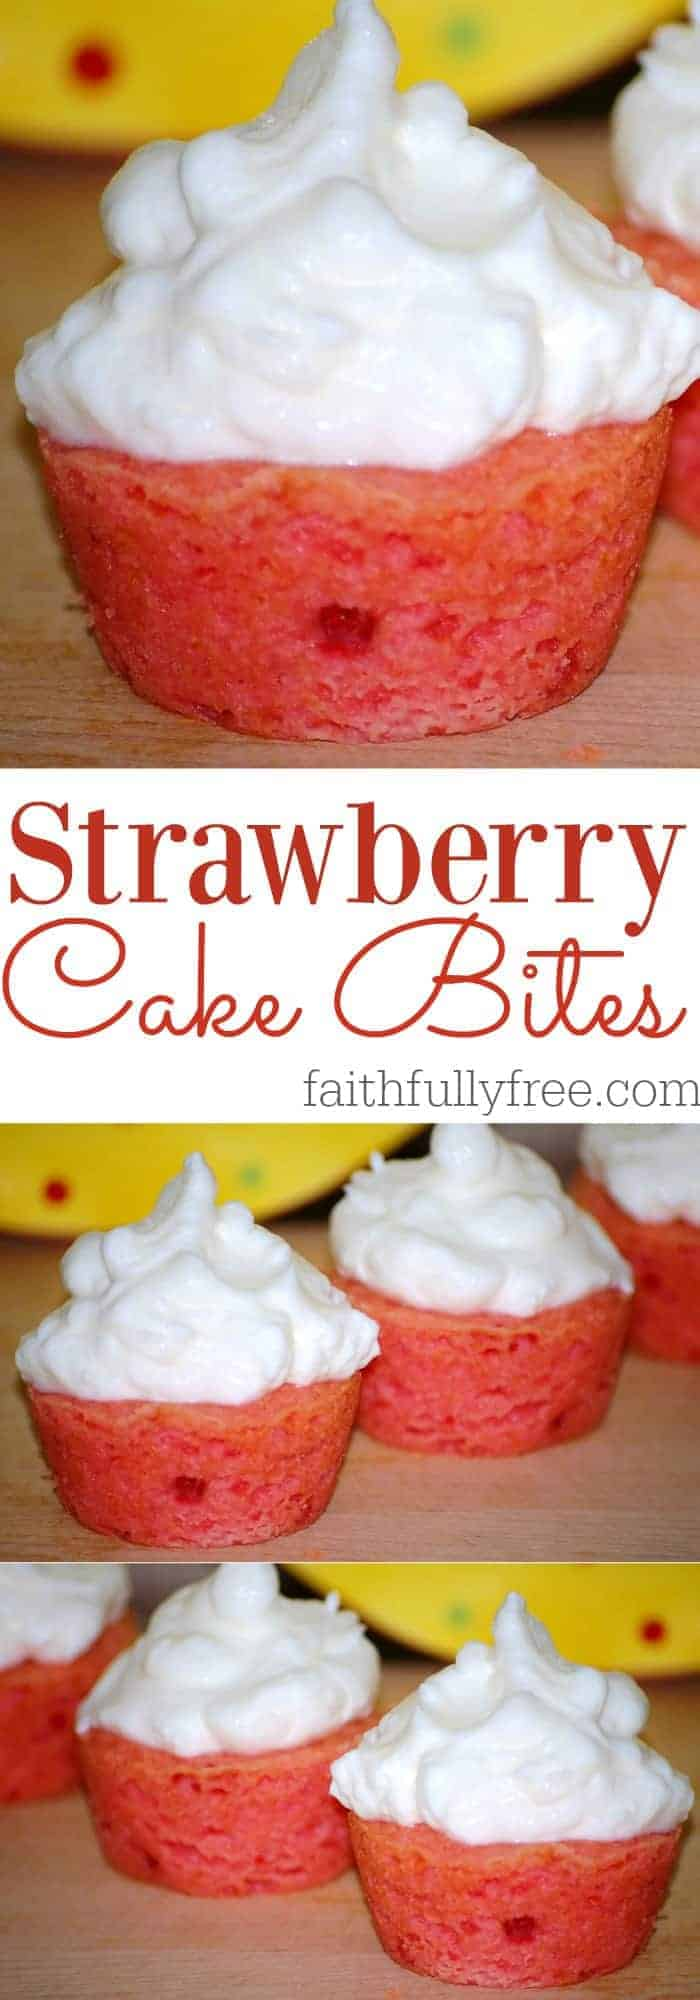 Mini Strawberry Cake Bites